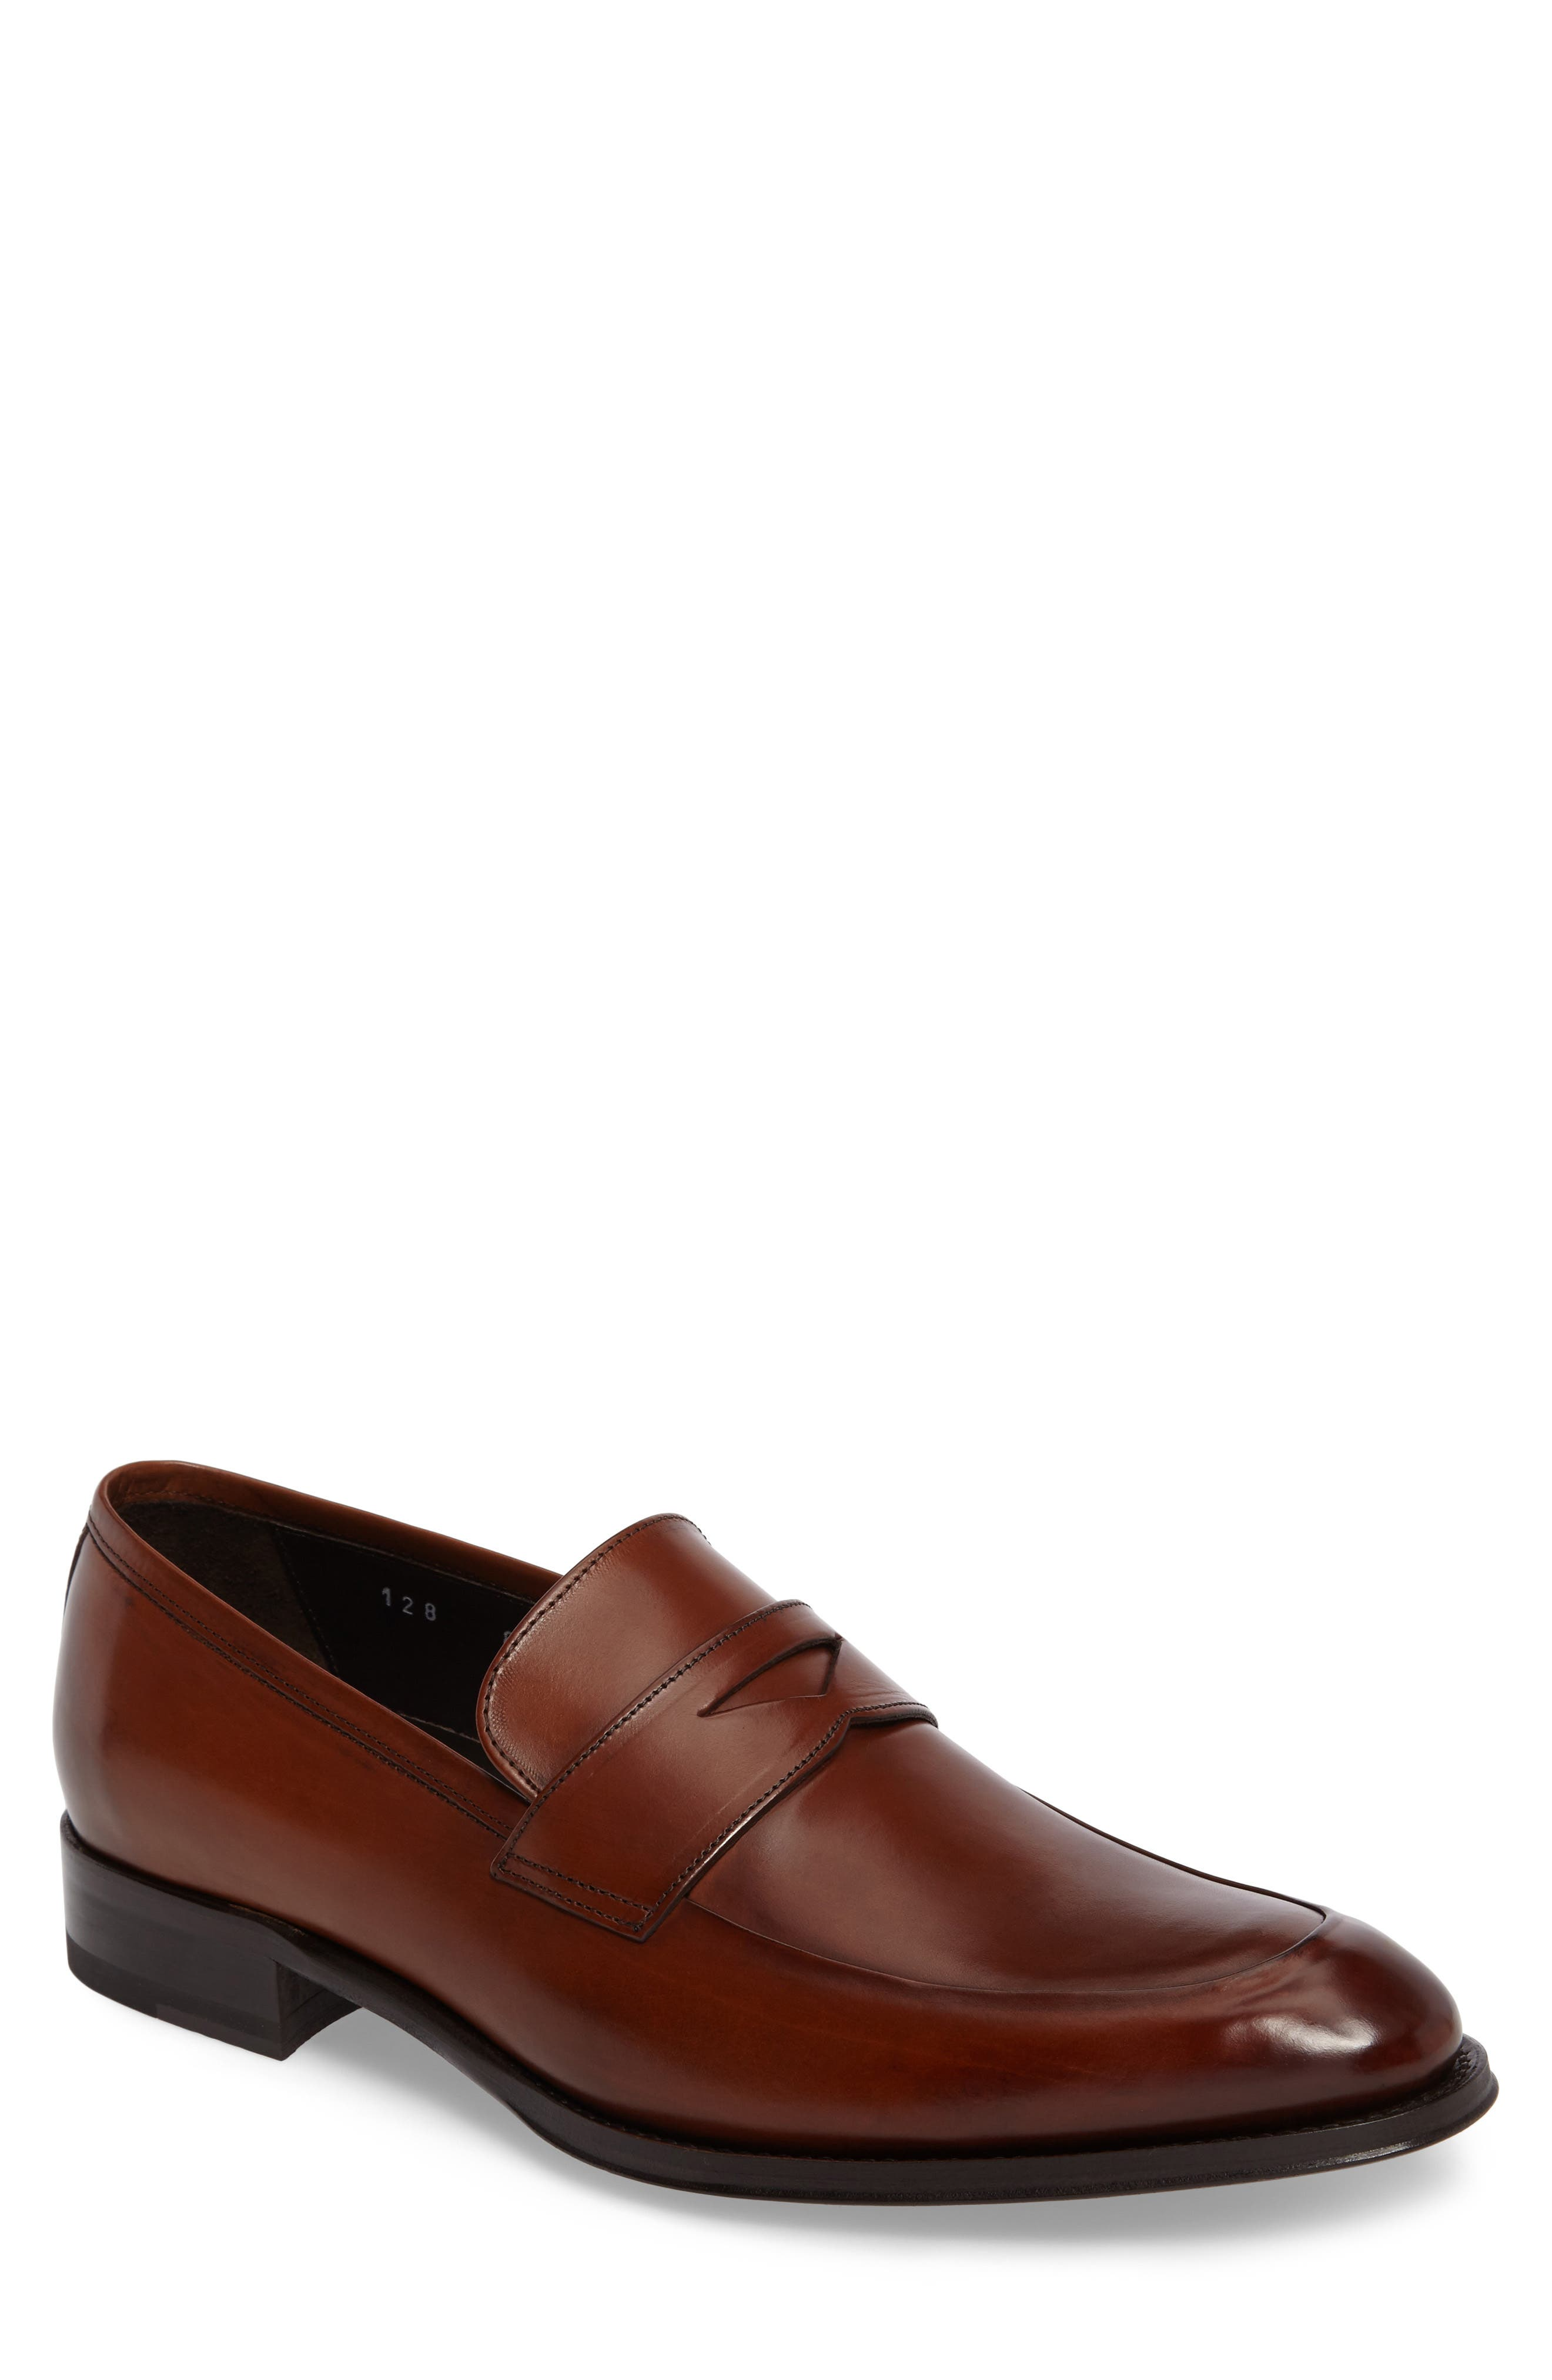 Francis Penny Loafer,                             Main thumbnail 1, color,                             Brown Leather